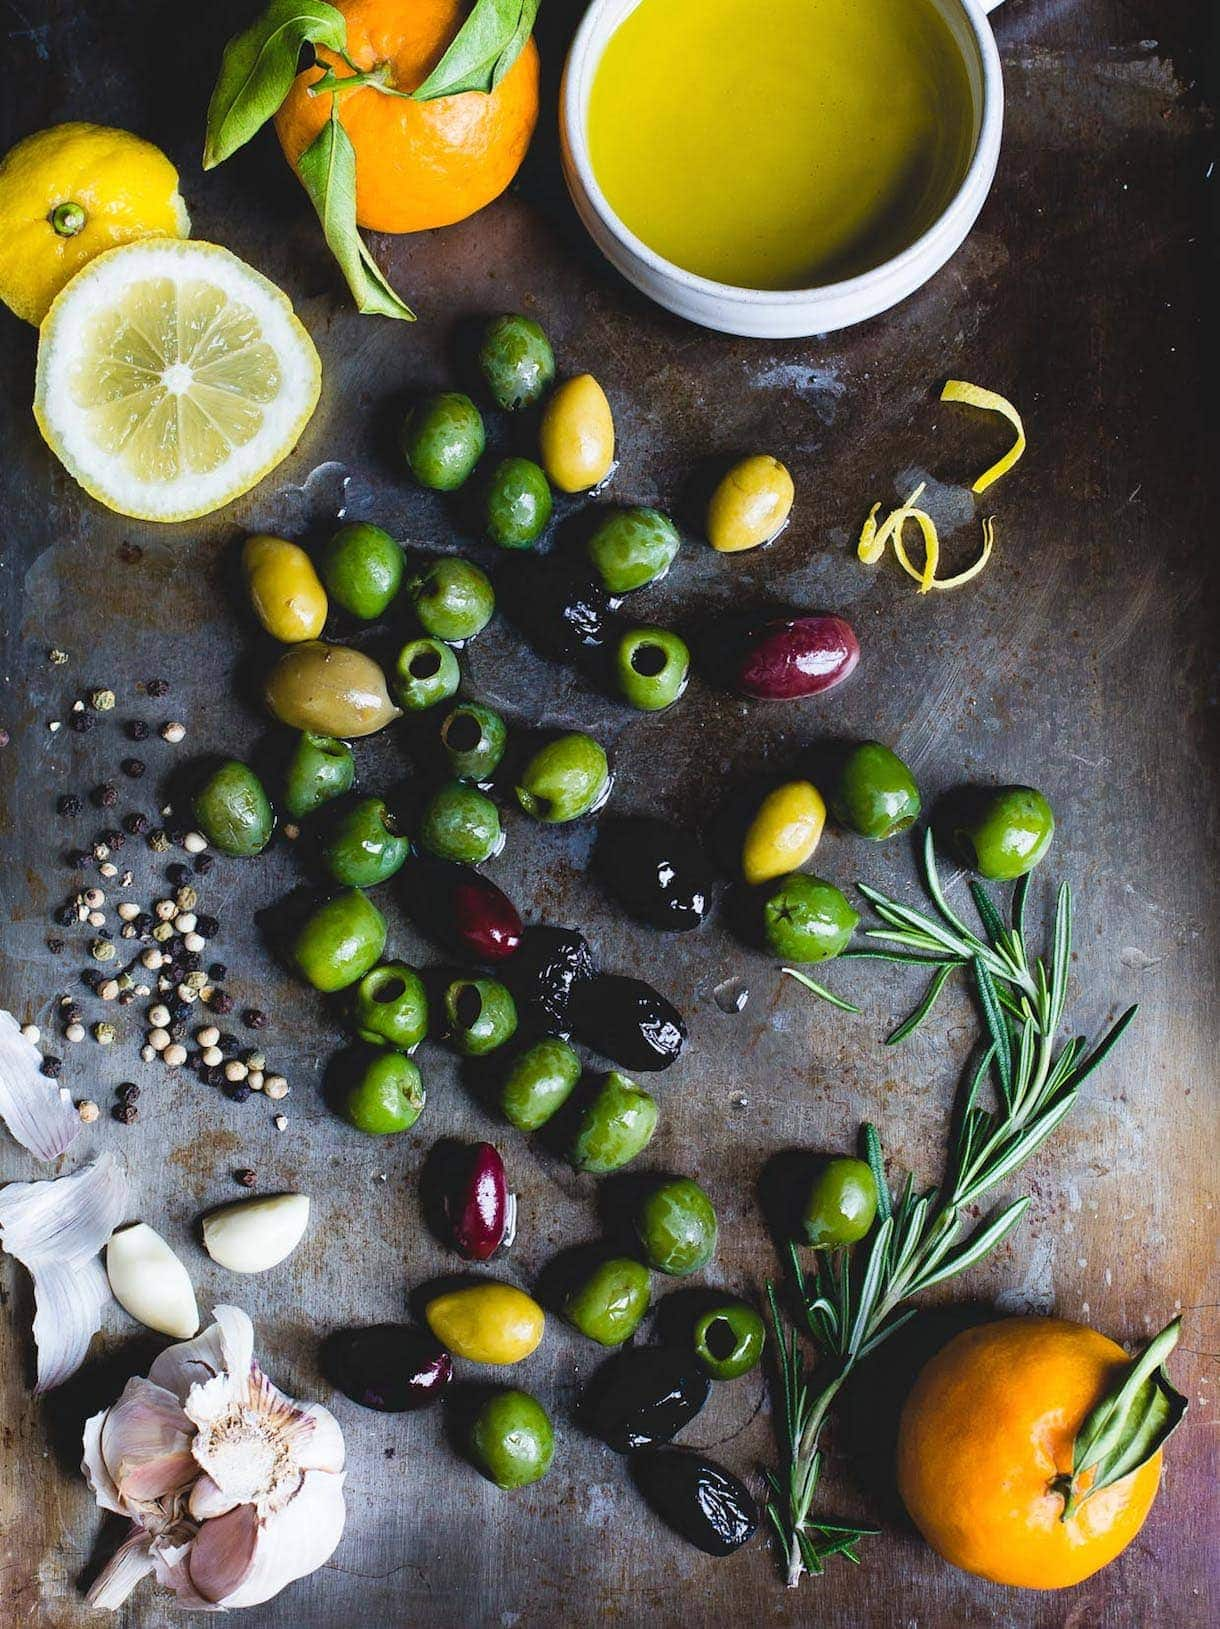 Warm Olives with Citrus, Rosemary, and Gin